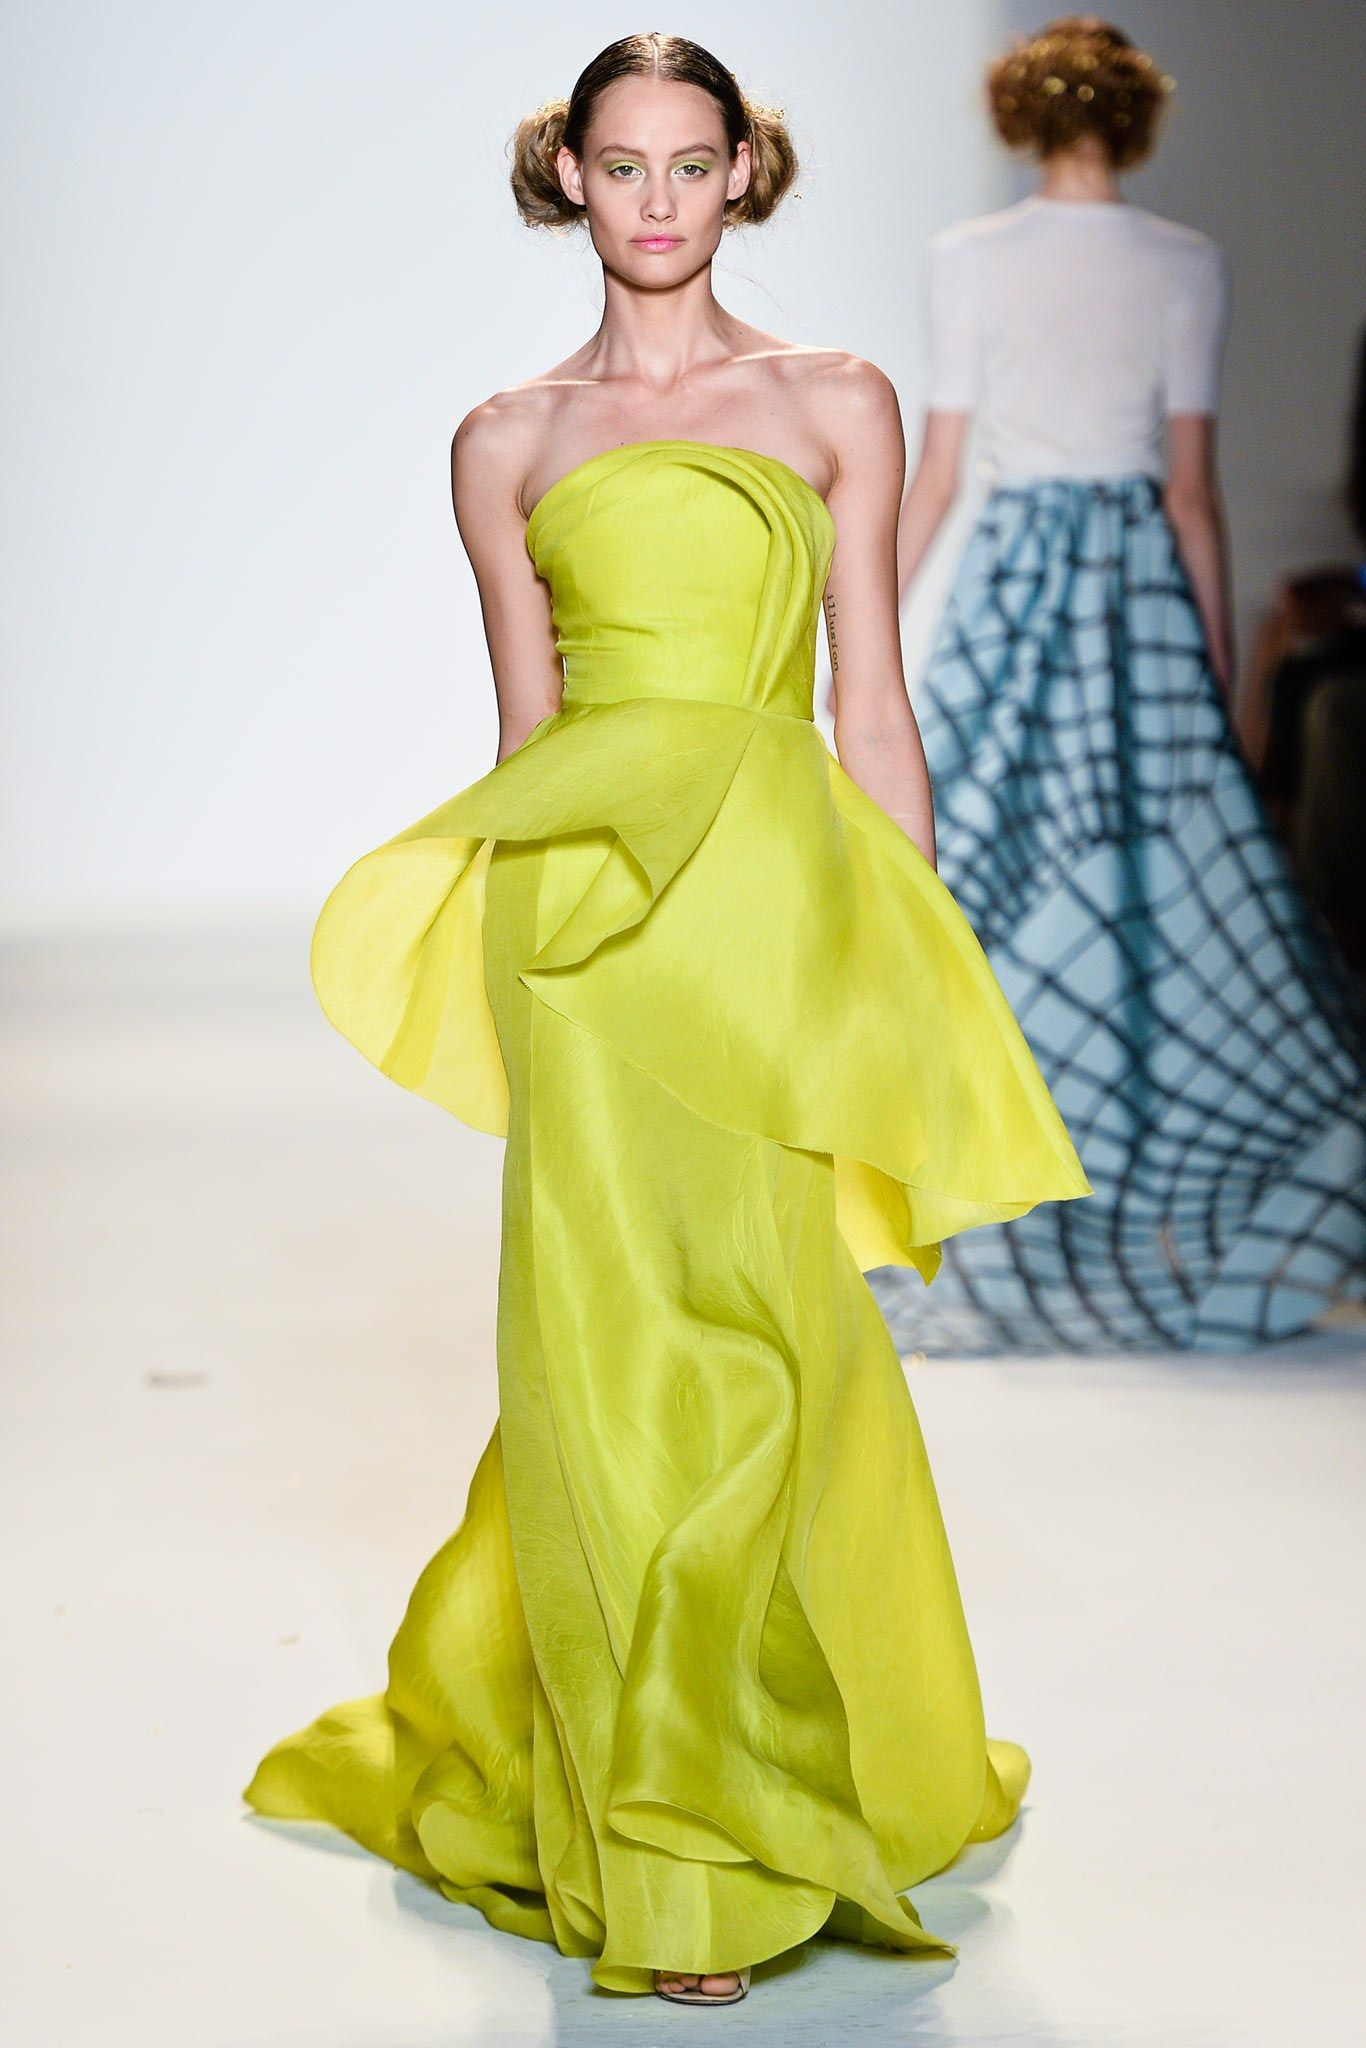 Lela Rose Spring 2014 Ready-to-Wear Collection - Vogue